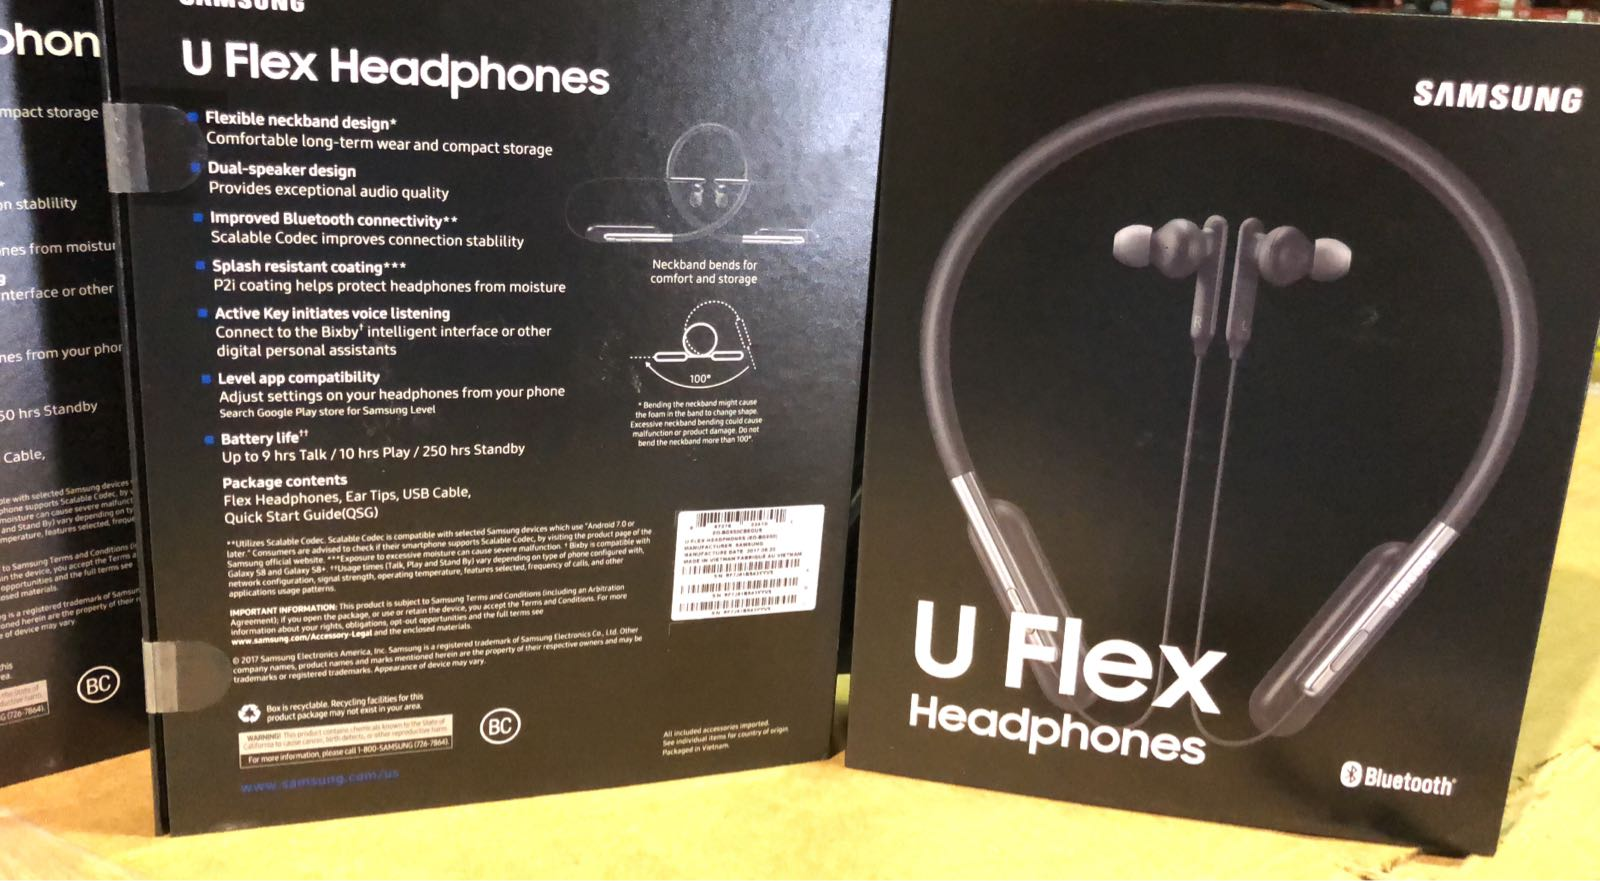 ✨🇺🇸 MEMORIAL DAY WEEKEND SALE🇺🇸✨ SAMSUNG U FLEX BLUETOOTH HEADPHONES (EO-BG950CBEGWW). NEW IN MASTER CARTON.